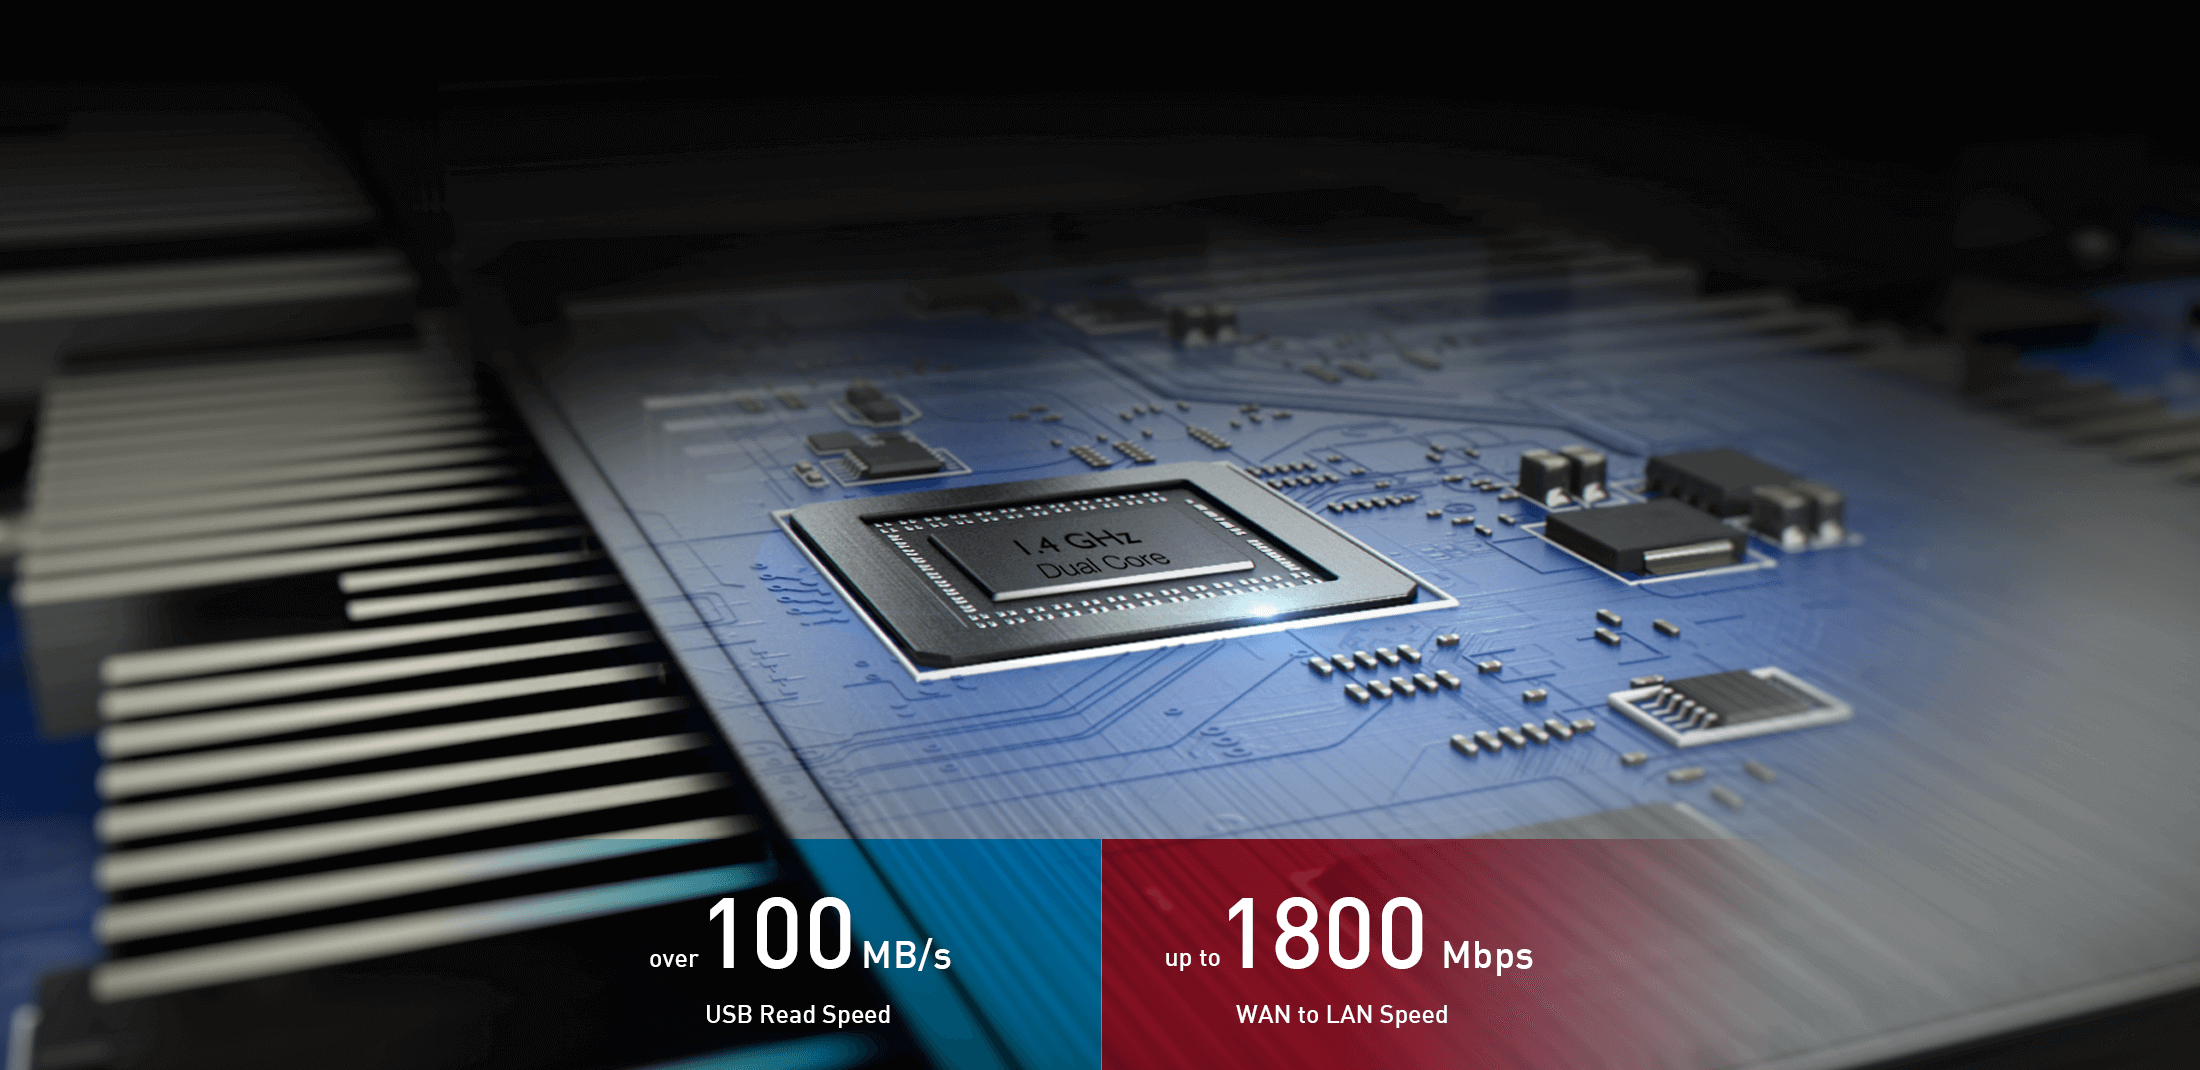 RT-AC5300 features a 1.4 GHz dual-core processor provides ultra-fast transfer speed